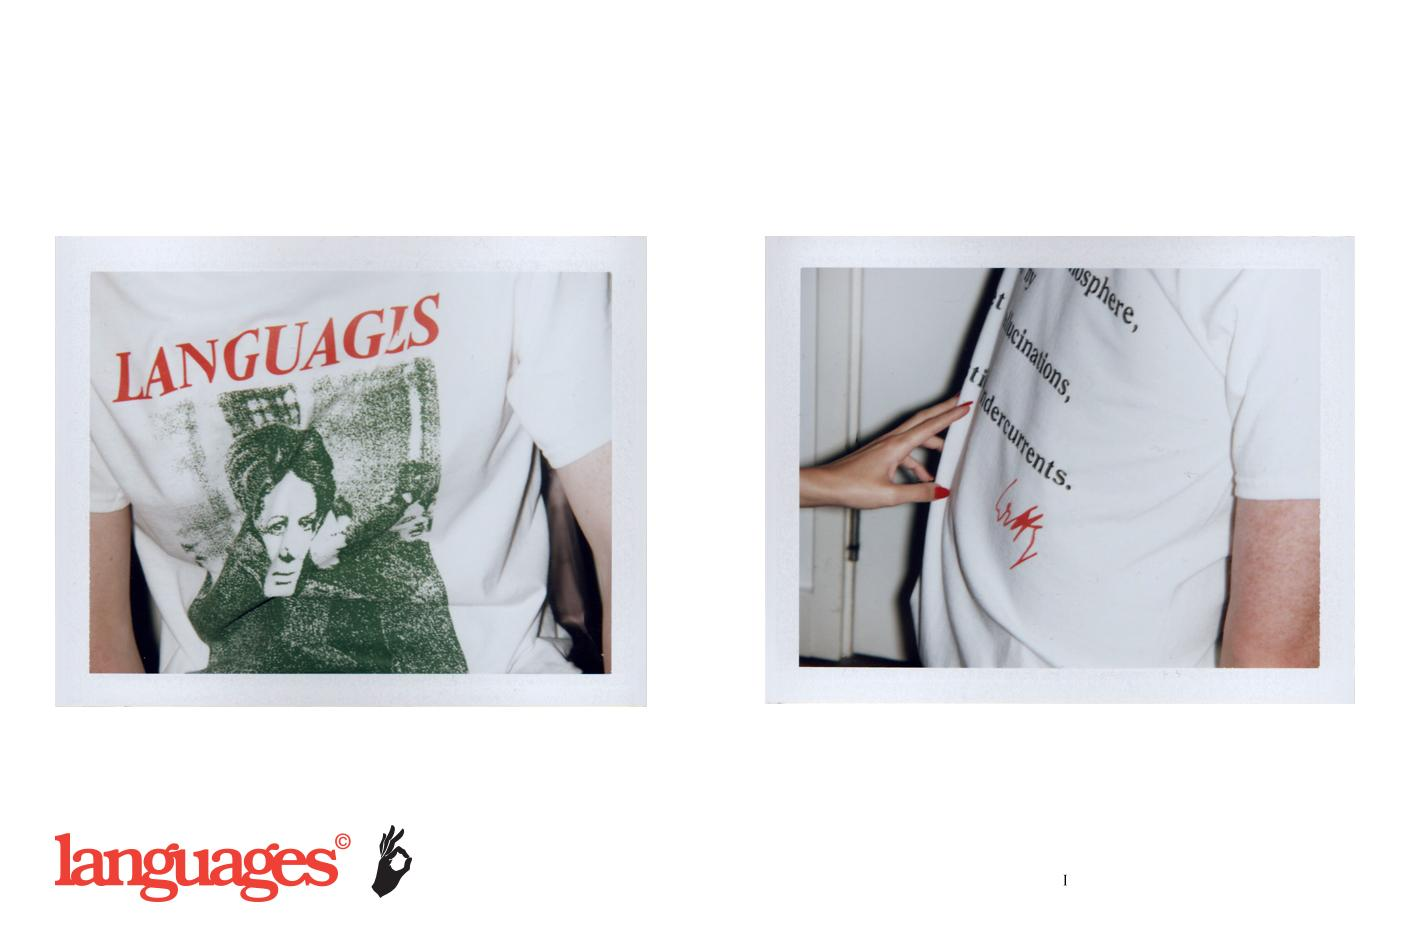 languages-drop-one-lookbook-page-001